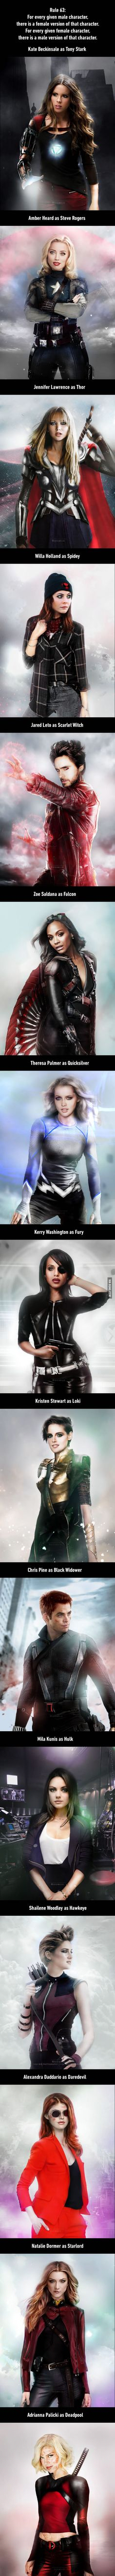 When Rule 63 Genderswap Applies To Marvel Characters (By Disimilis)